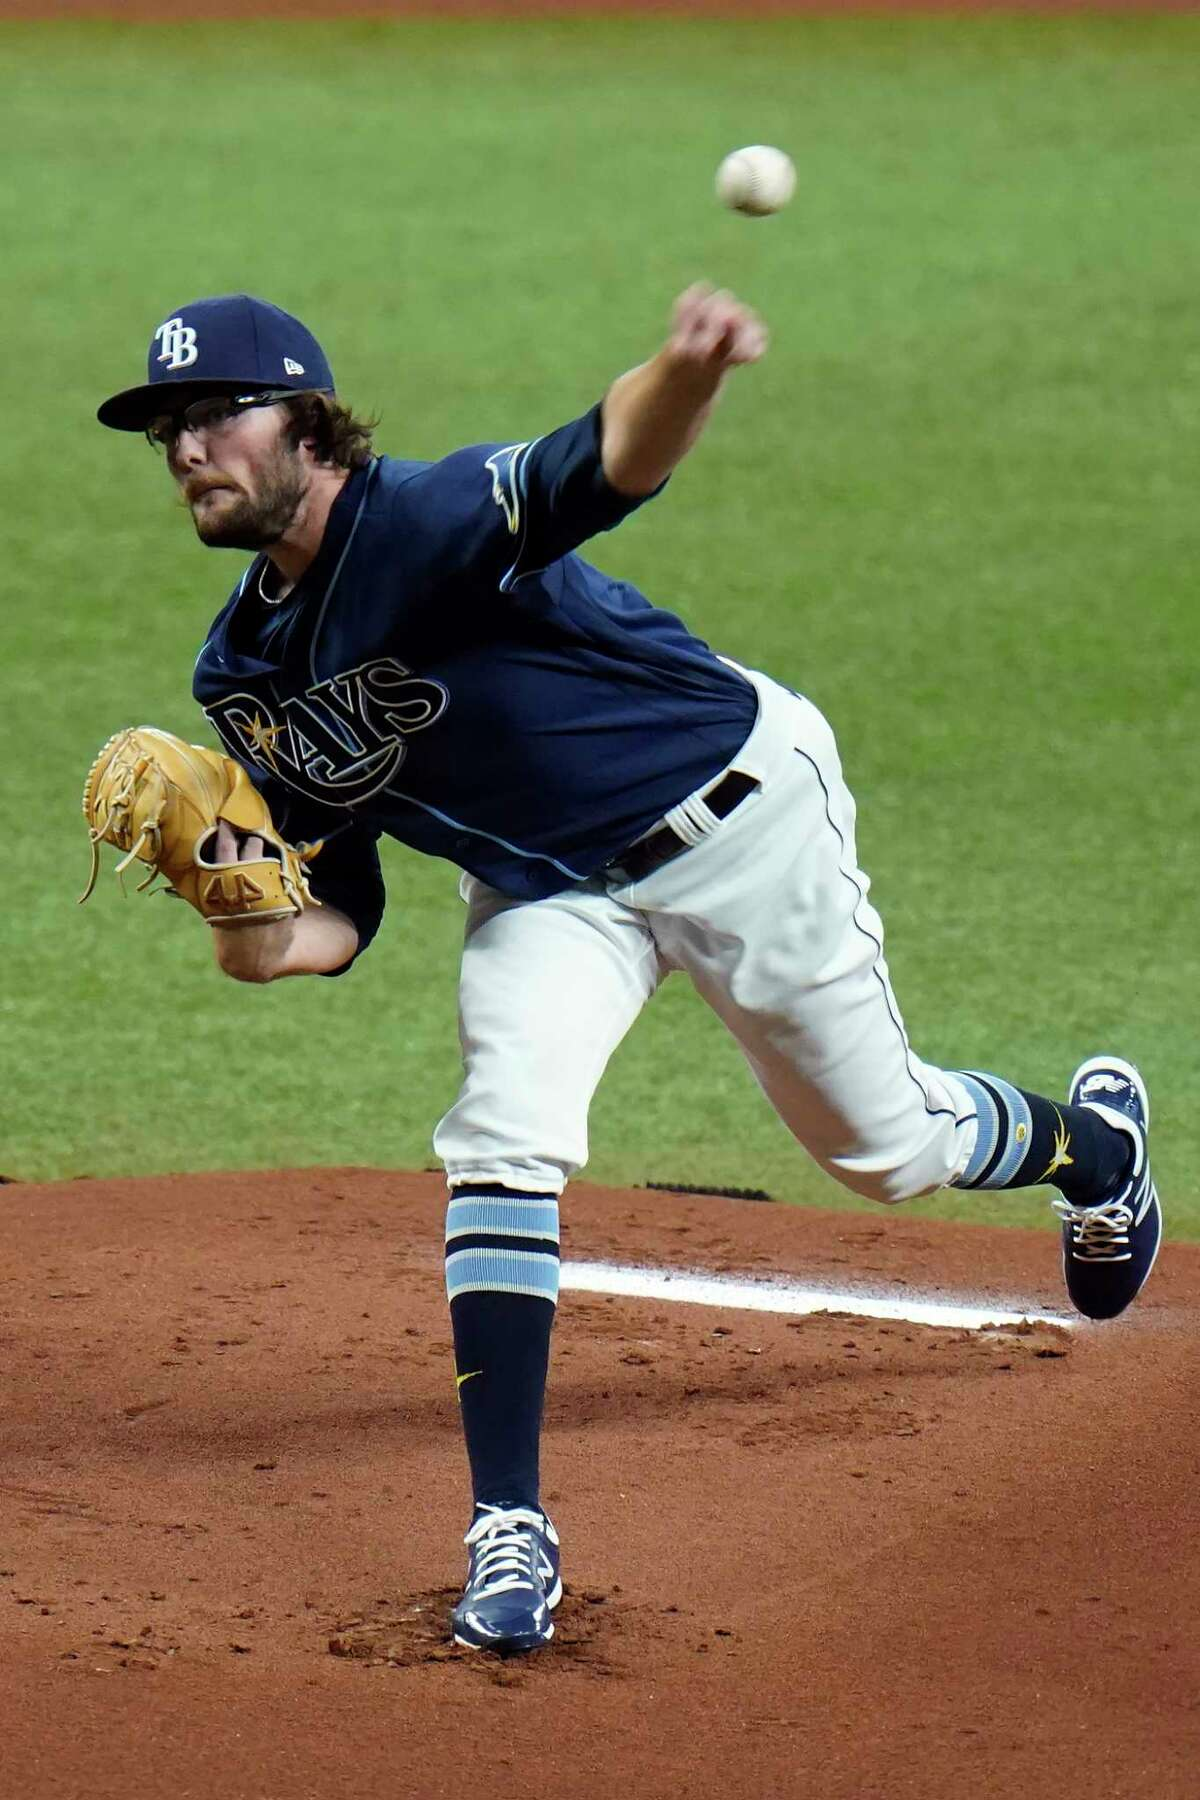 Tampa Bay Rays' Josh Fleming pitches to the Miami Marlins during the first inning of a baseball game Friday, Sept. 4, 2020, in St. Petersburg, Fla. (AP Photo/Chris O'Meara)